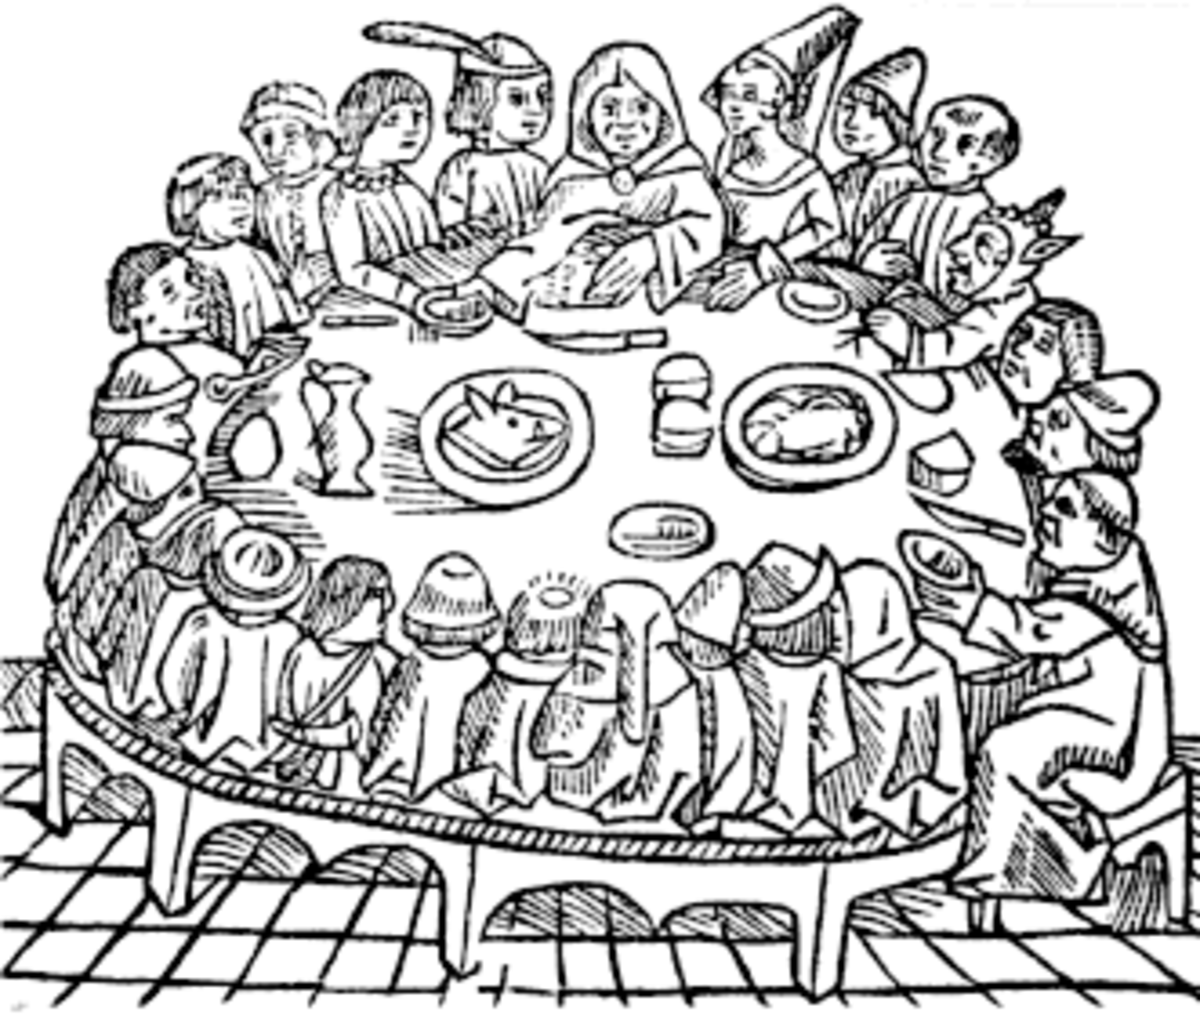 The Canterbury Tales was of a very mixed group of people, which is why it is a good source of knowledge about the time period then.